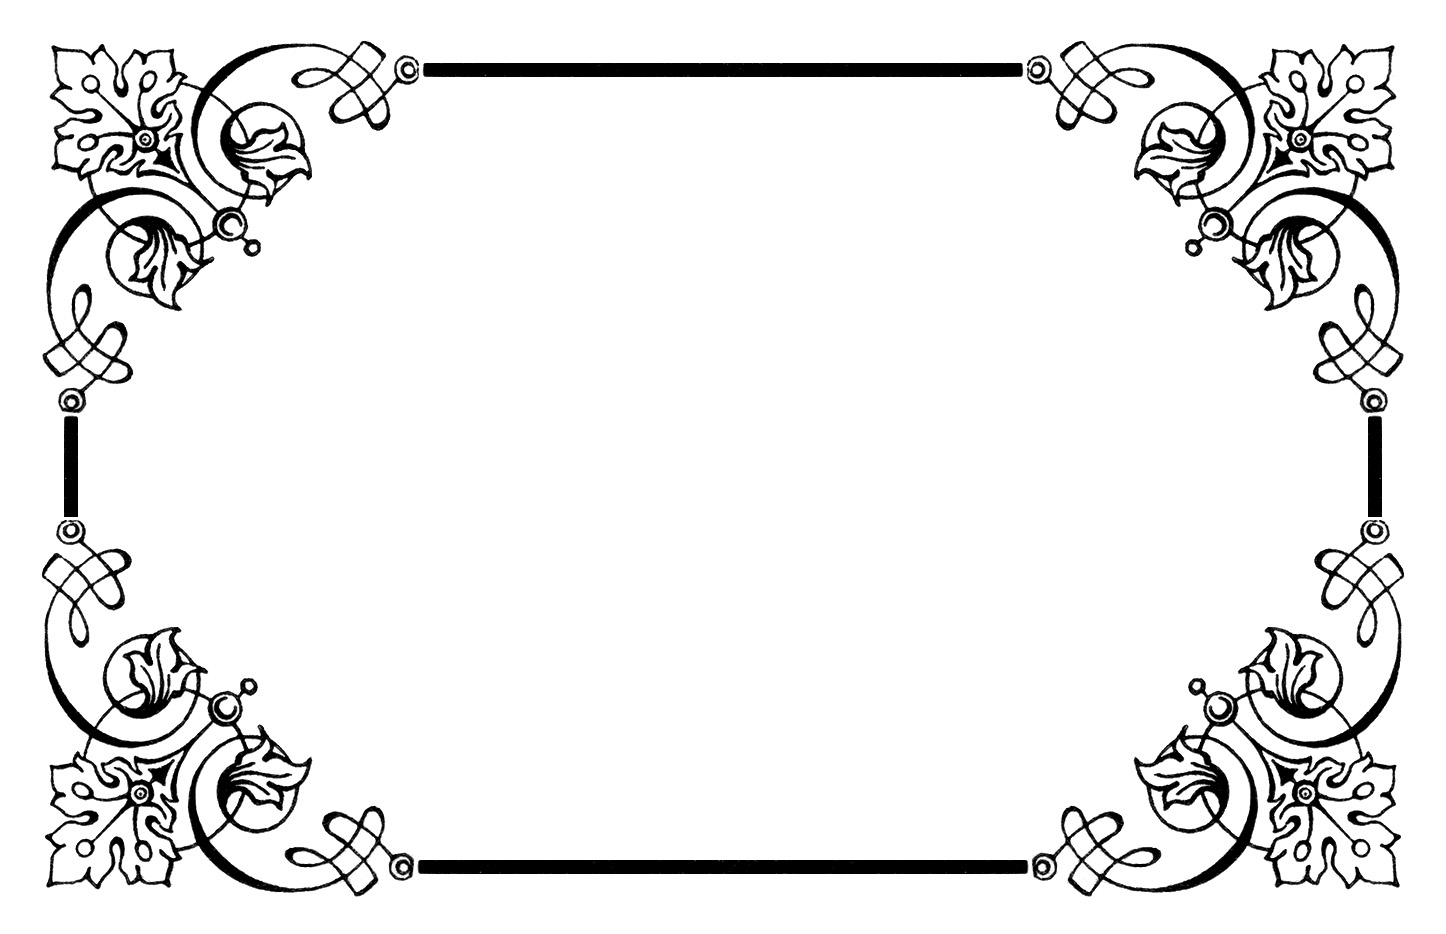 Boarder clipart vintage. Borders panda free images